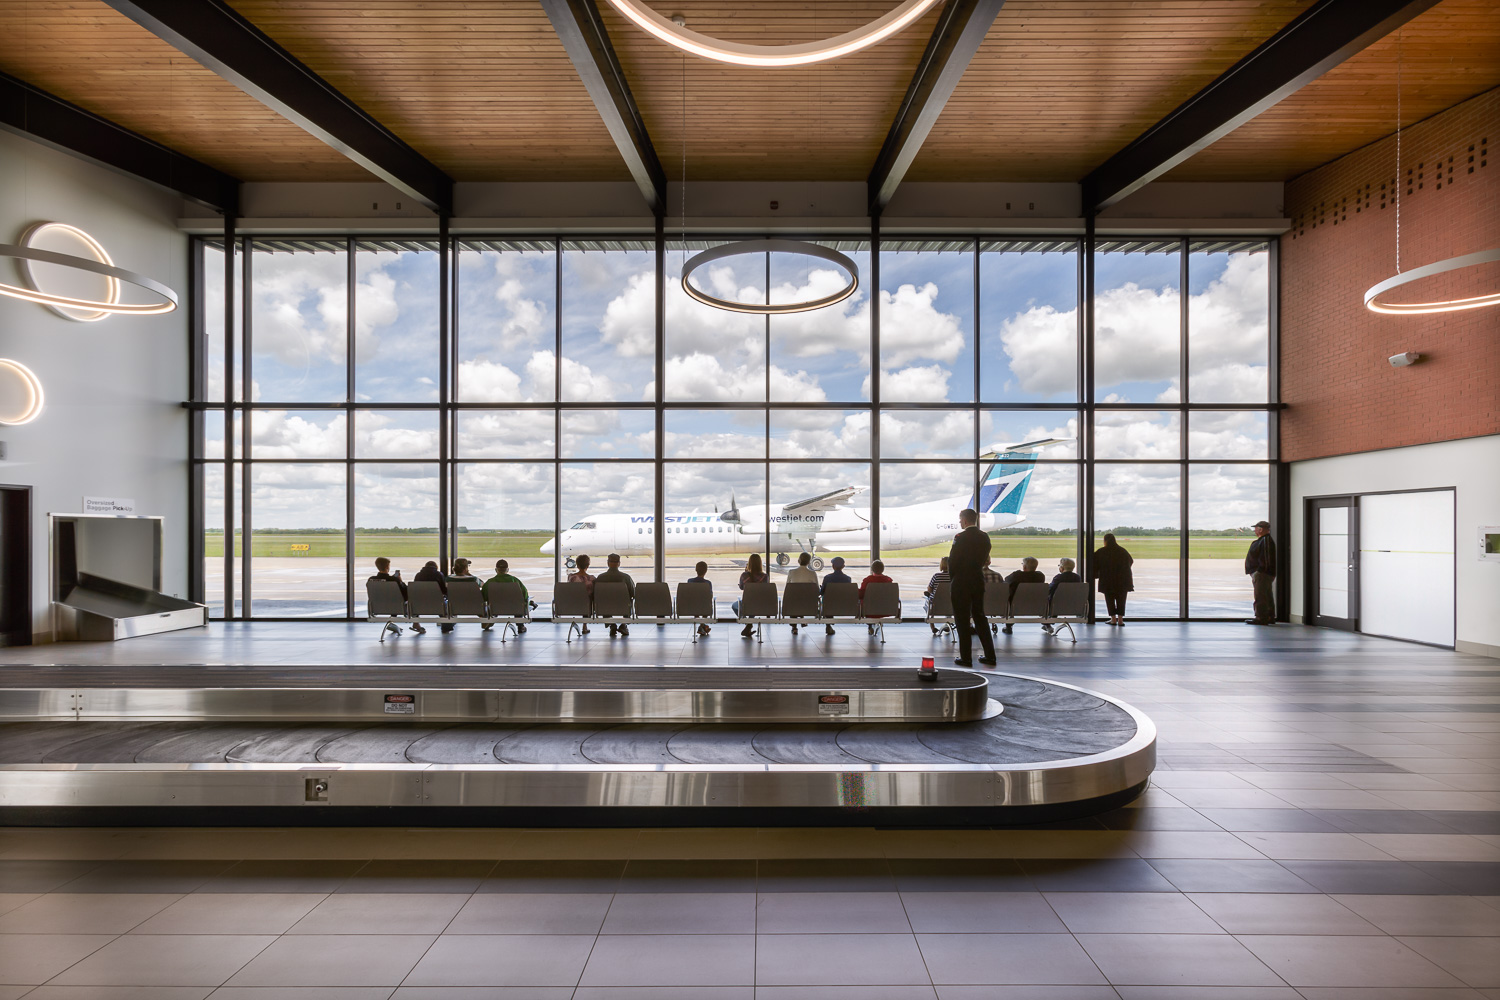 Brandon Municipal Airport, interior photo of Arrivals Hall with people watching a plane taxi by outside / Photo:  Lindsay Reid